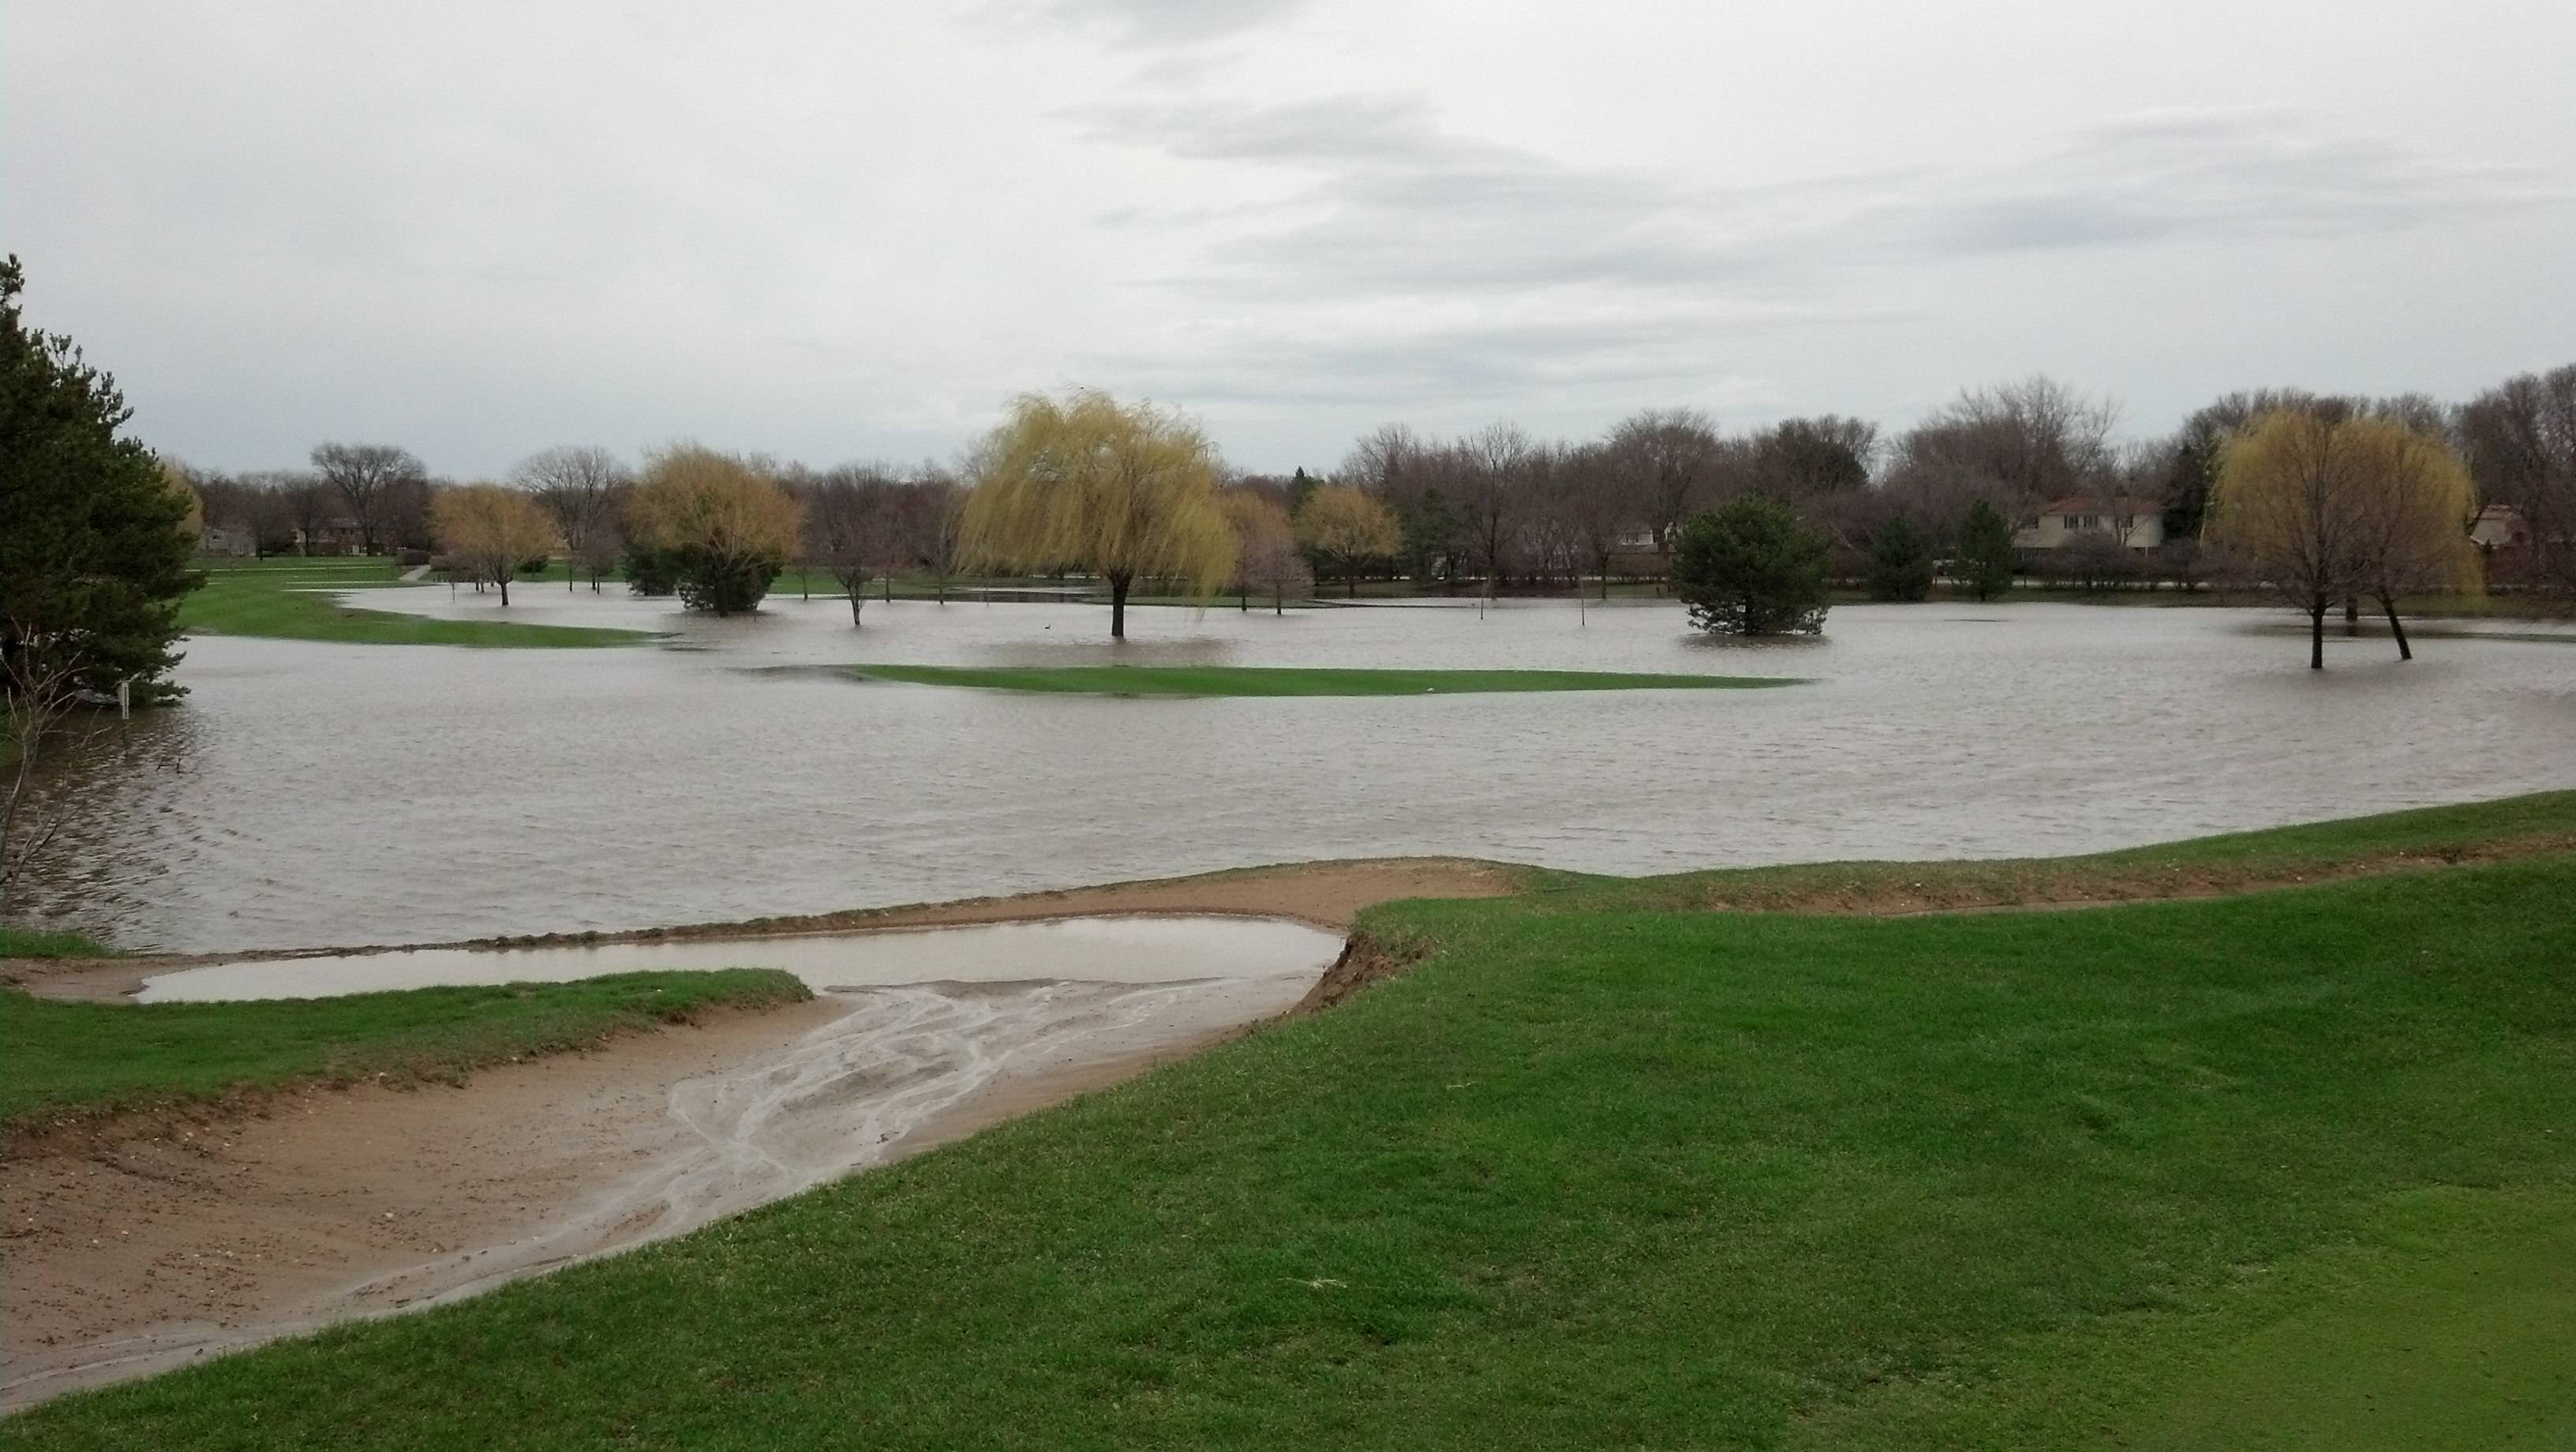 """ I am standing on the 9th hole green at Arlington Lakes GC in Arlington heights over looking the 9th and 11th fairways now being adjoined as true water holes! There is almost no where to hit your ball."